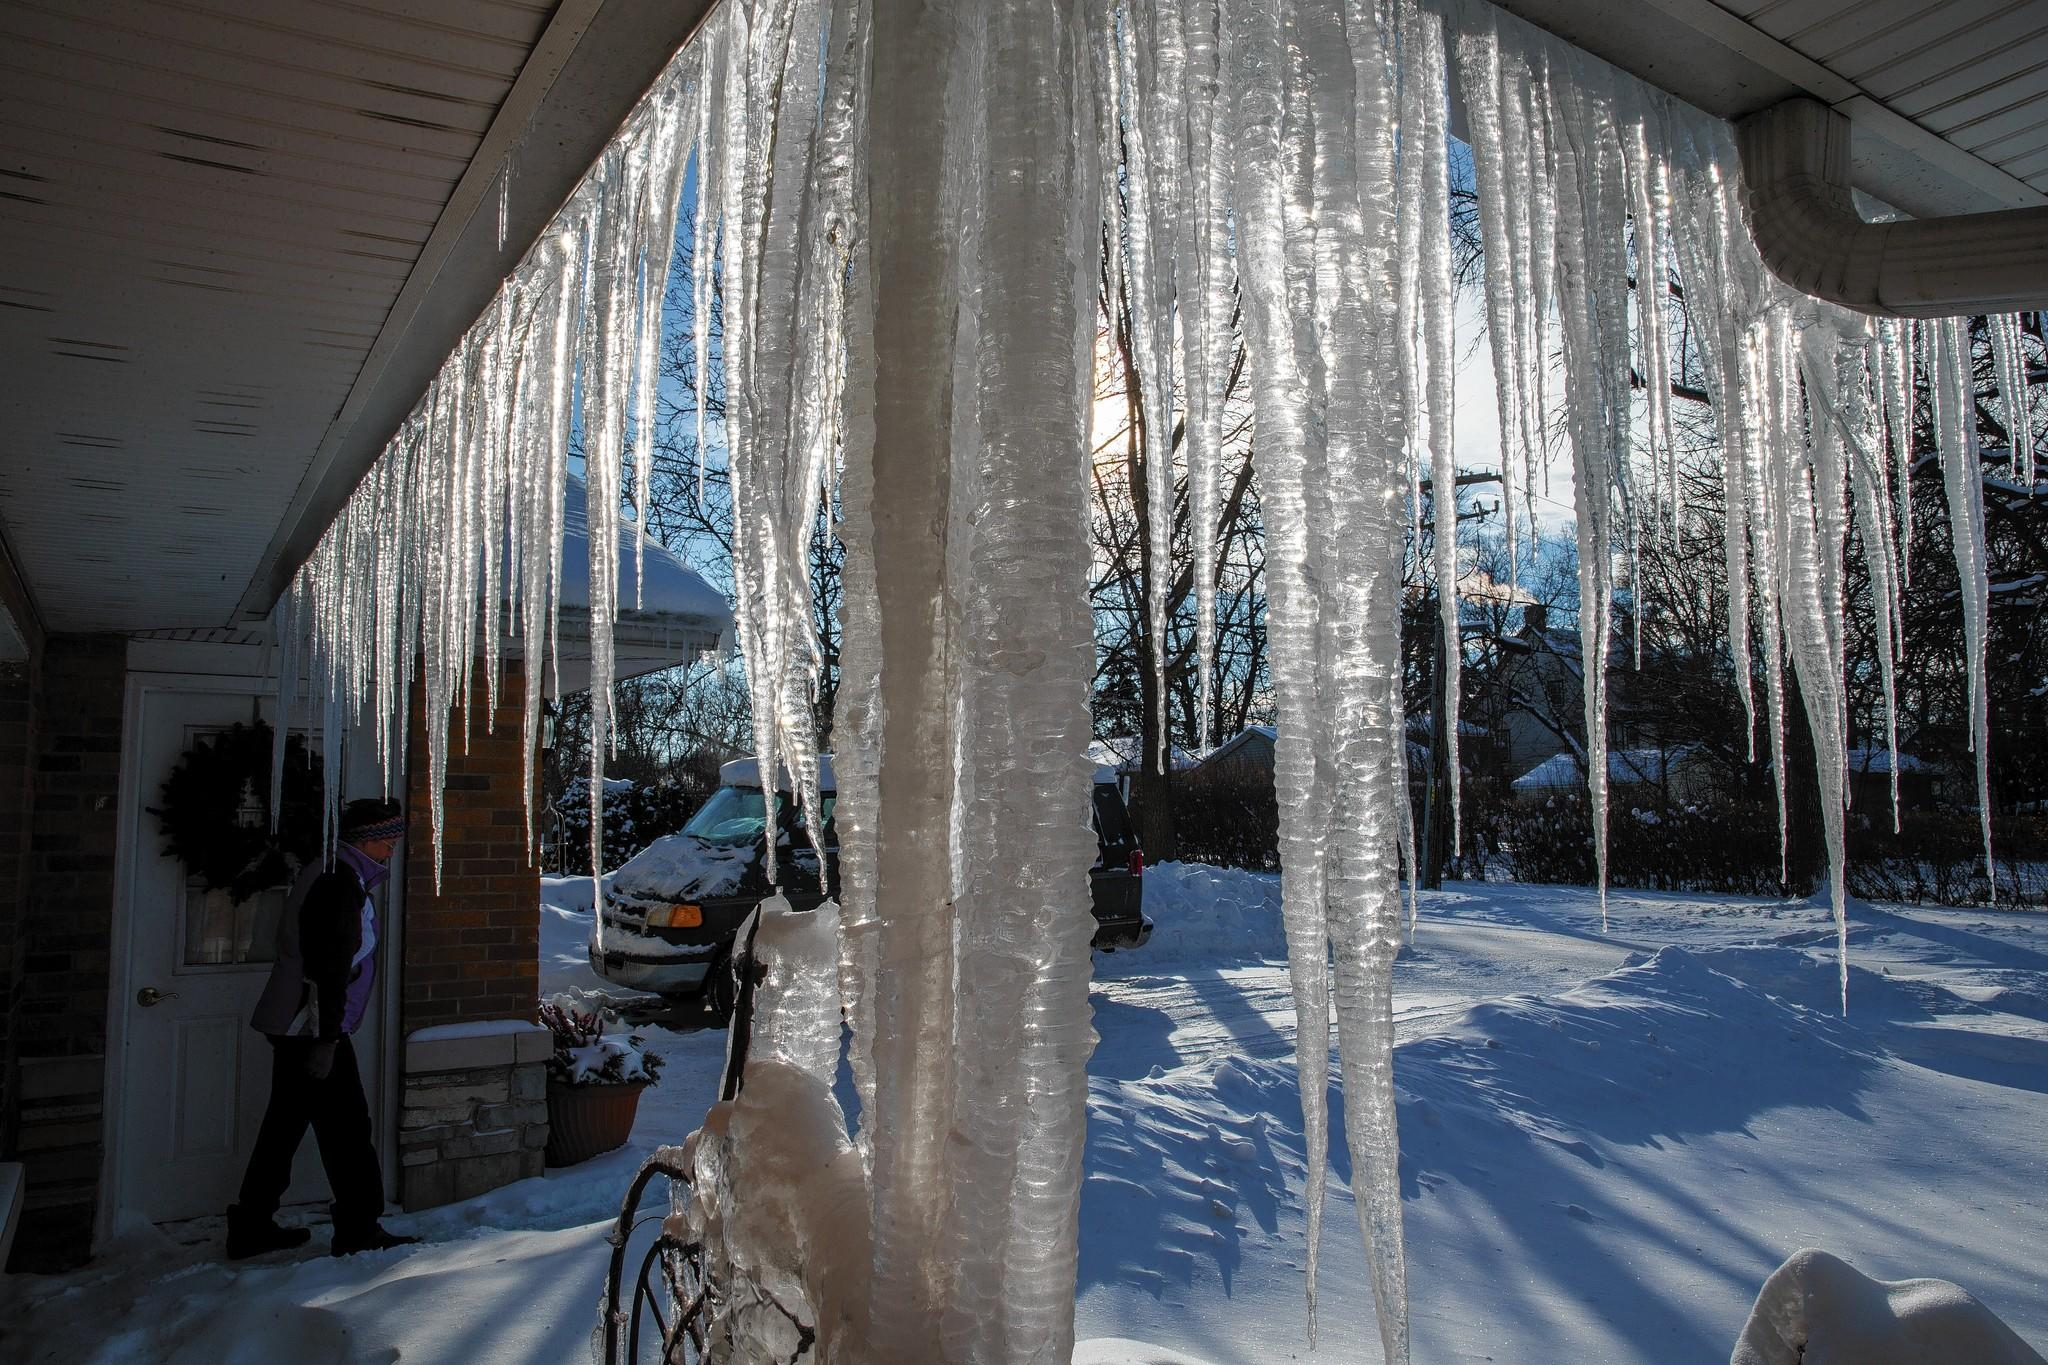 Rise In Temperatures Could Cause More Ice Dams On Homes